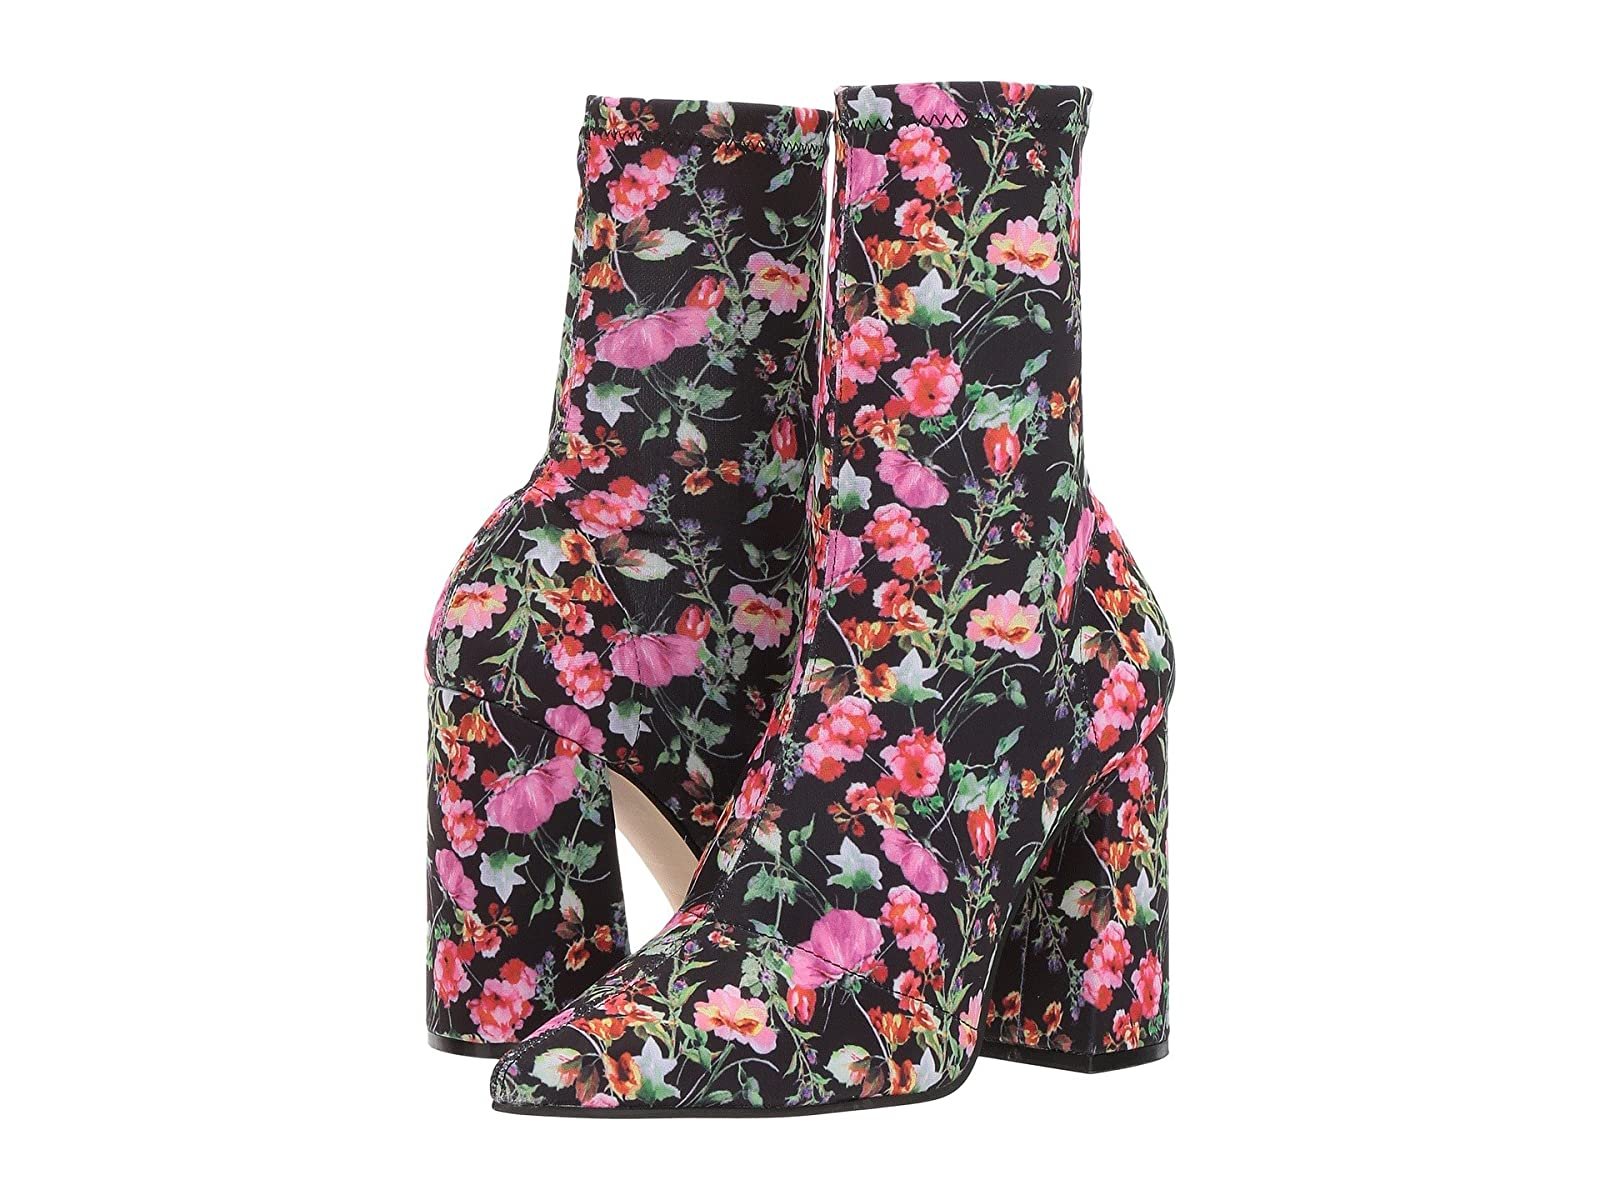 Steve Madden LombardCheap and distinctive eye-catching shoes